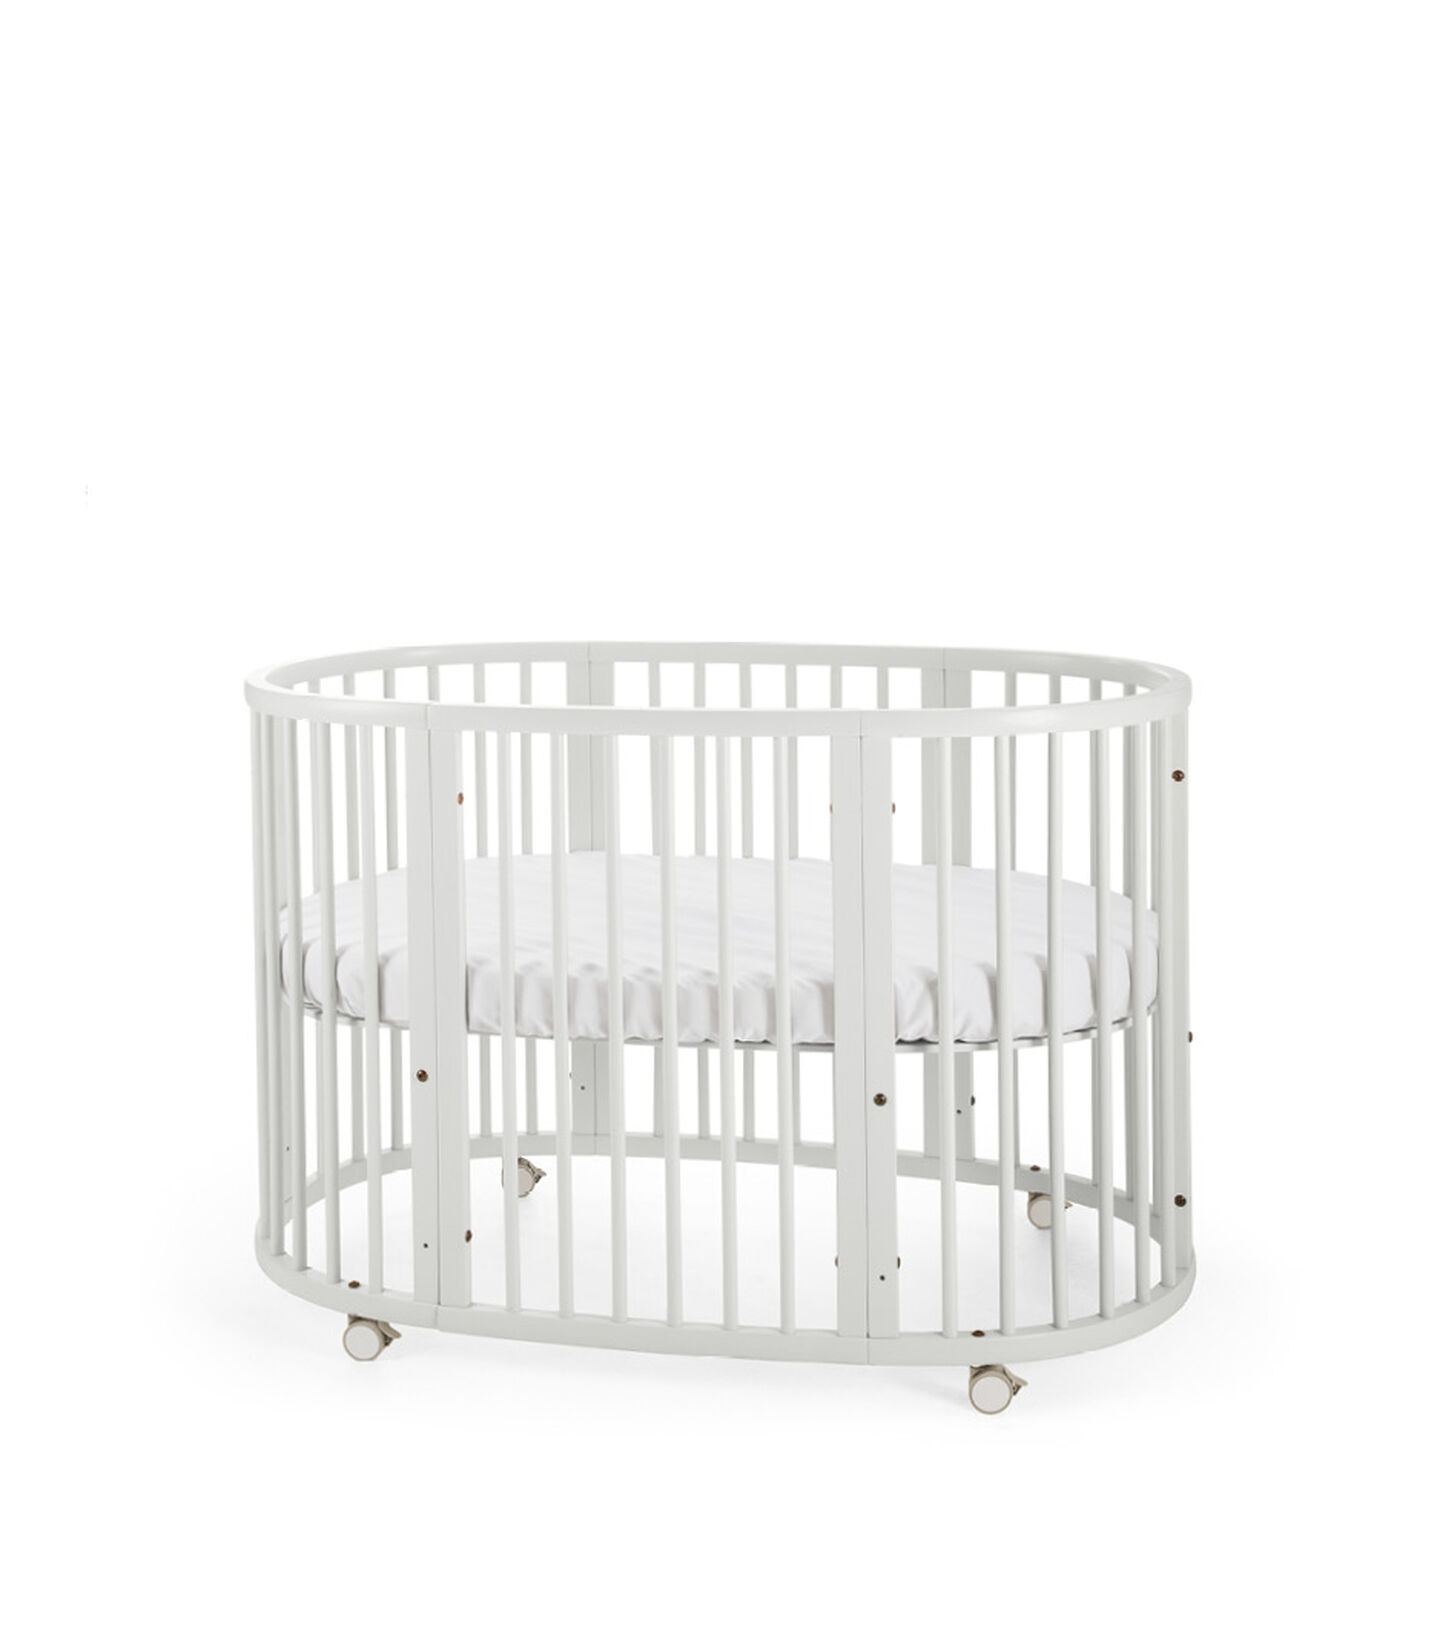 Stokke® Sleepi™ Crib/Bed White, White, mainview view 2